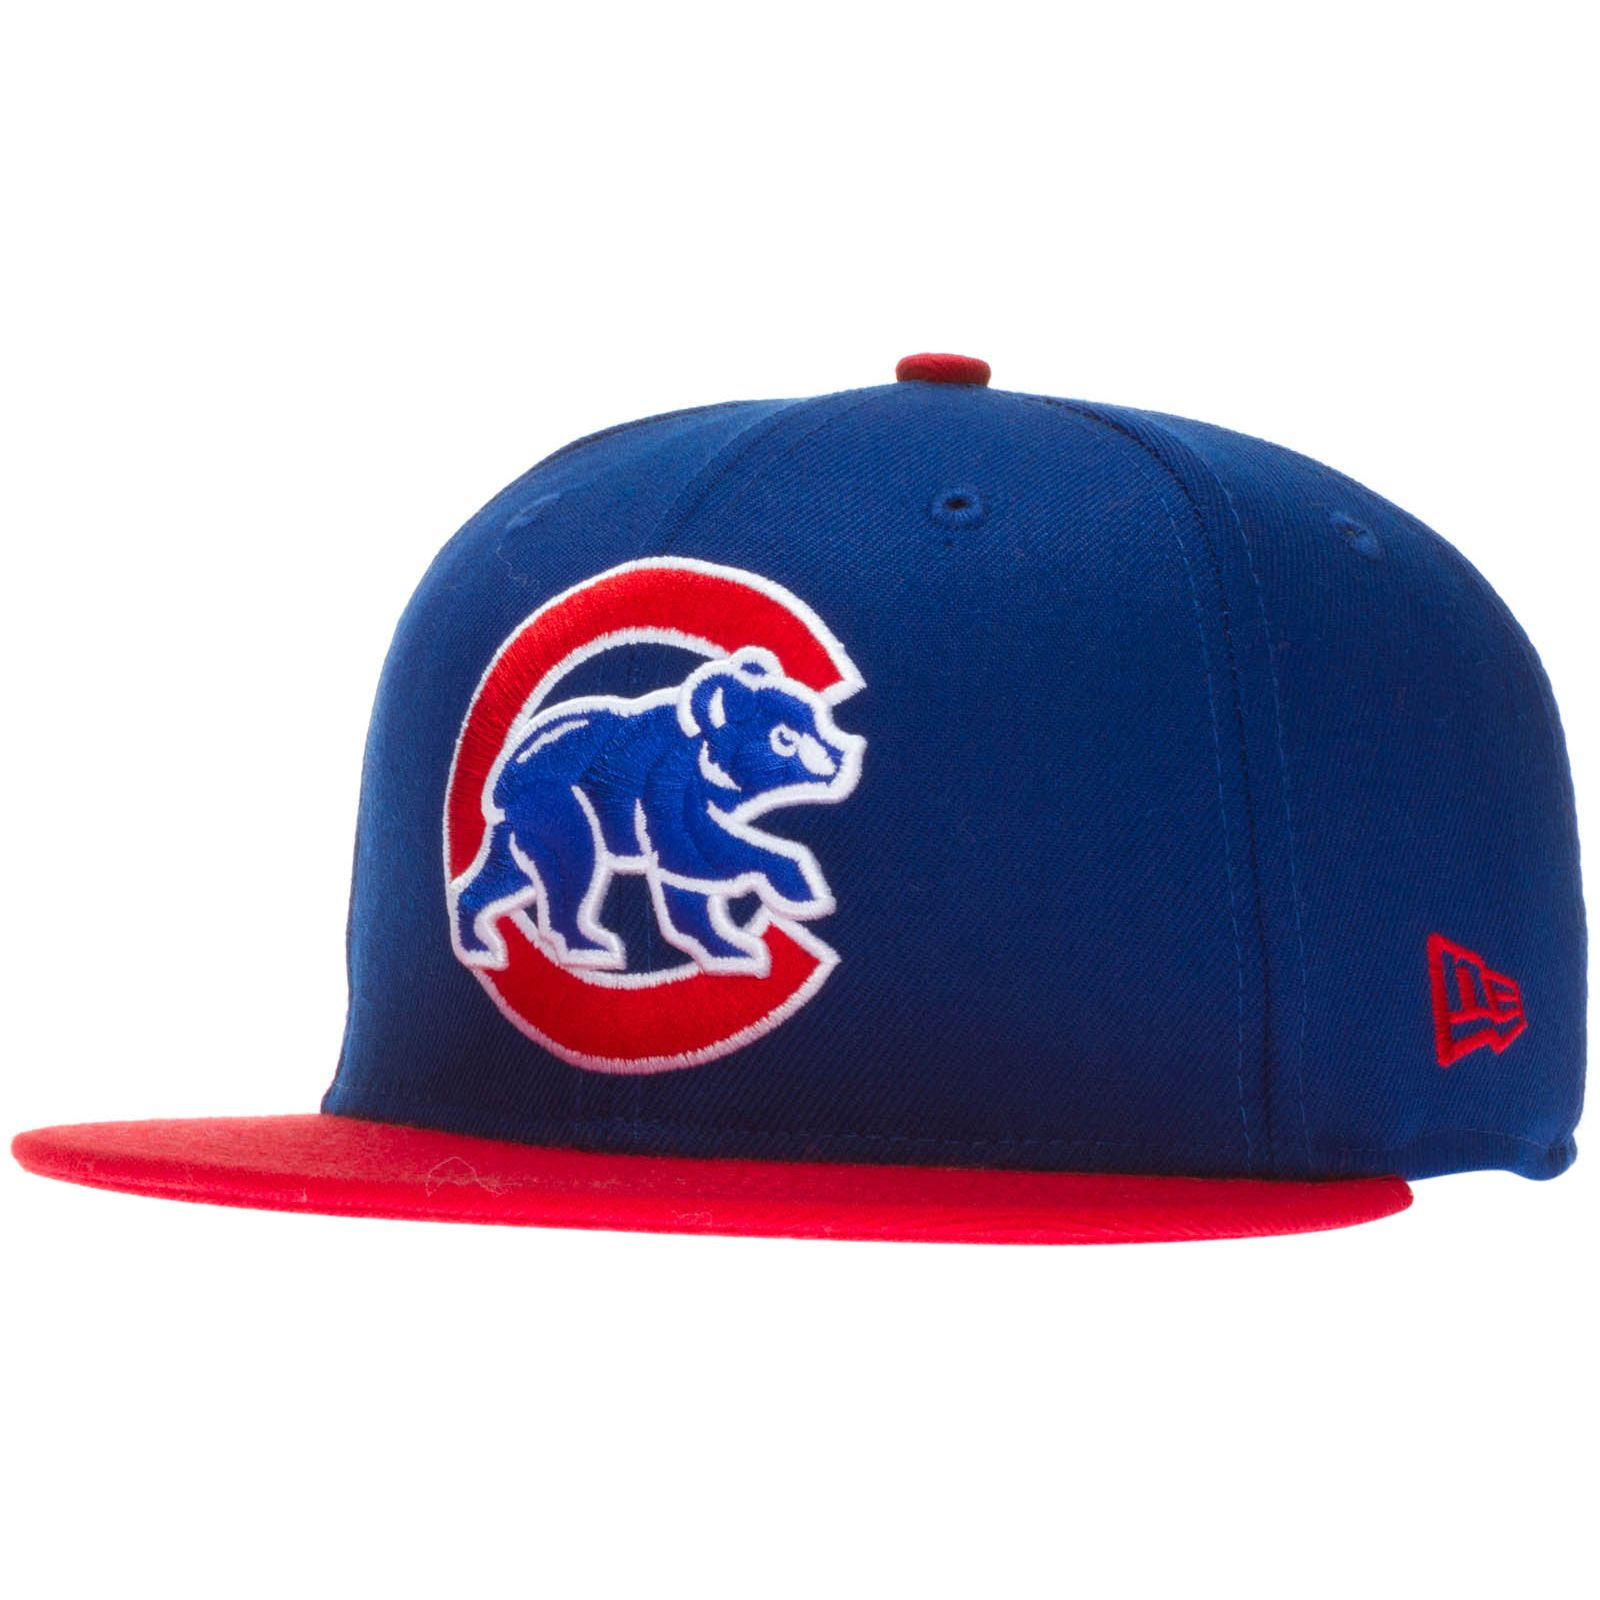 fb35902a96b Chicago Cubs Royal and Red Oversize Crawl Bear Logo Snapback Hat by New Era   Chicago  ChicagoCubs  Cubs